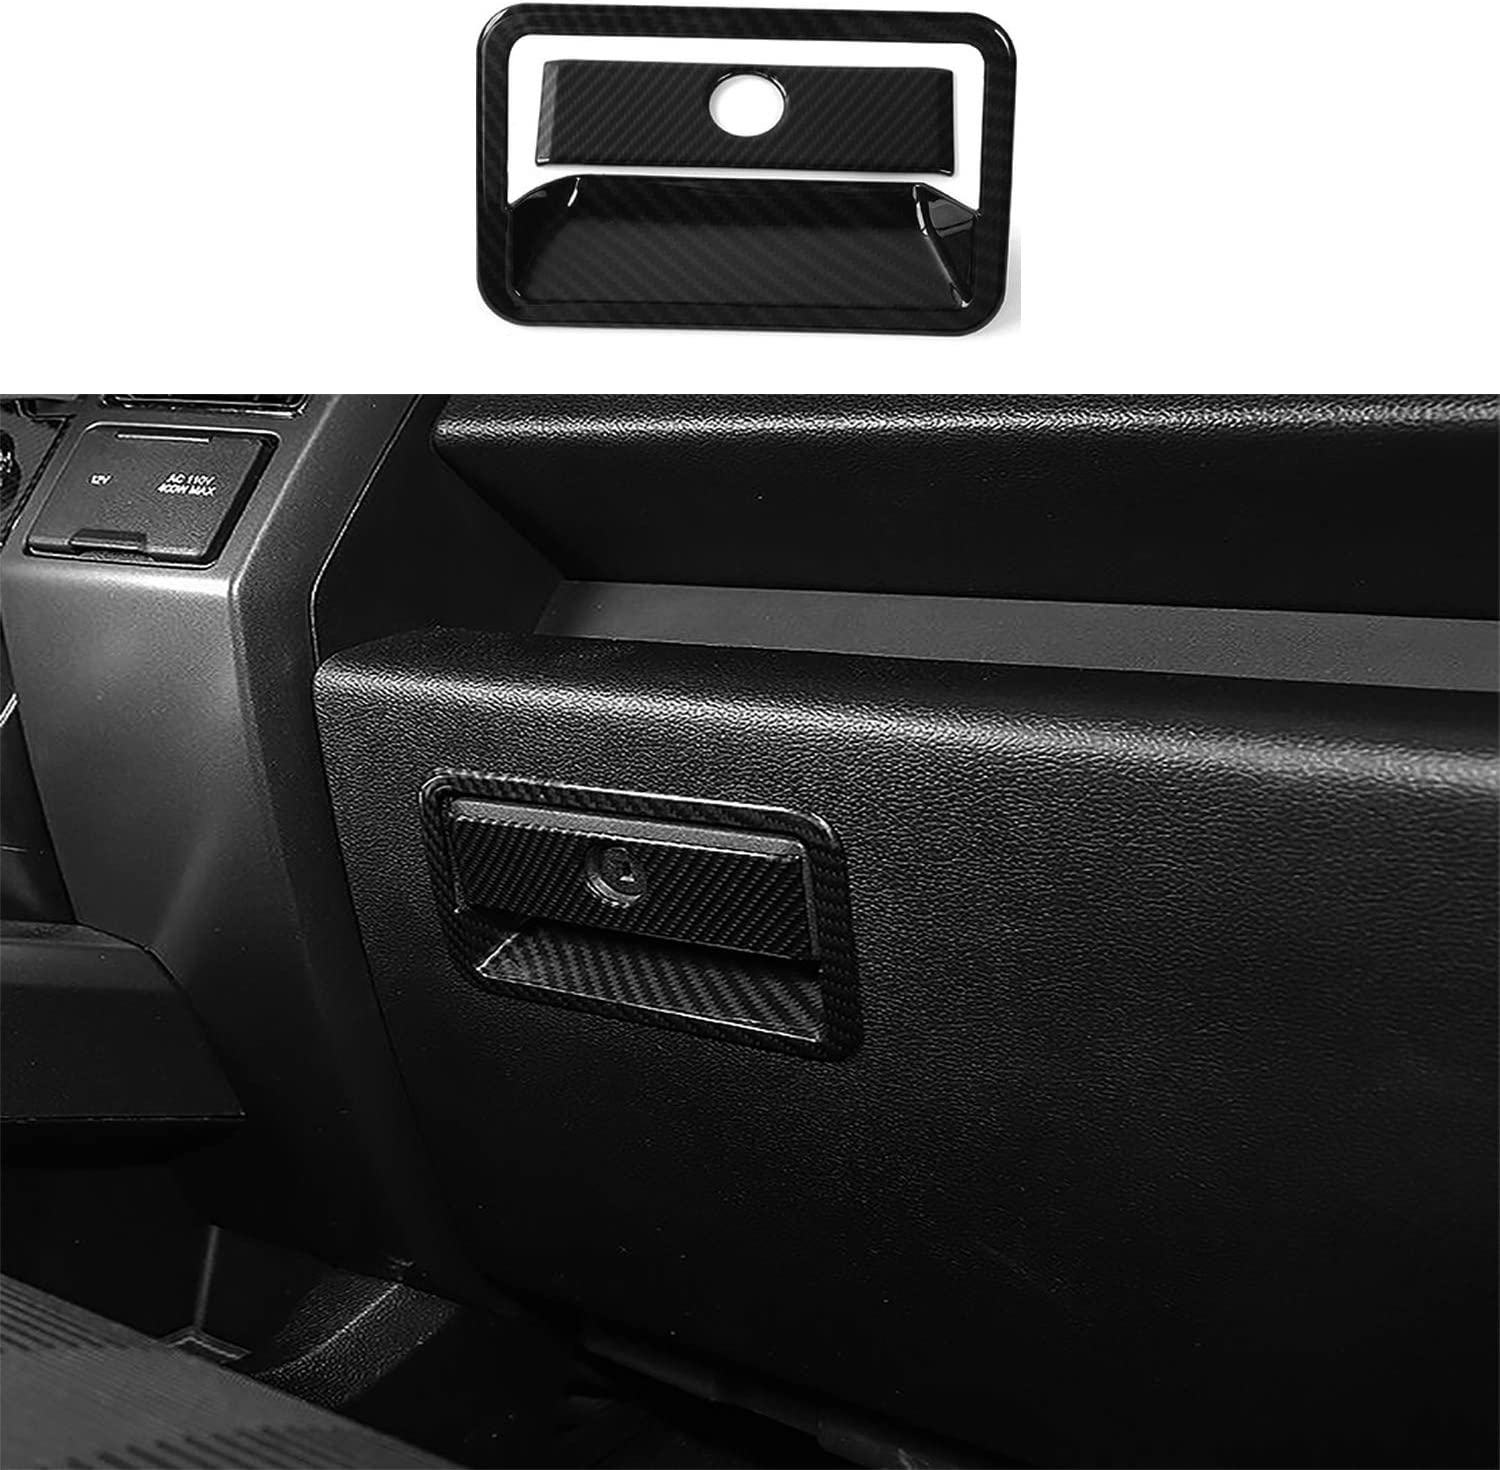 Voodonala for F-150 Navigation Air Conditioning Volume Emergency Light Trim for 2015-2020 Ford F150 ABS Chrome 4pcs